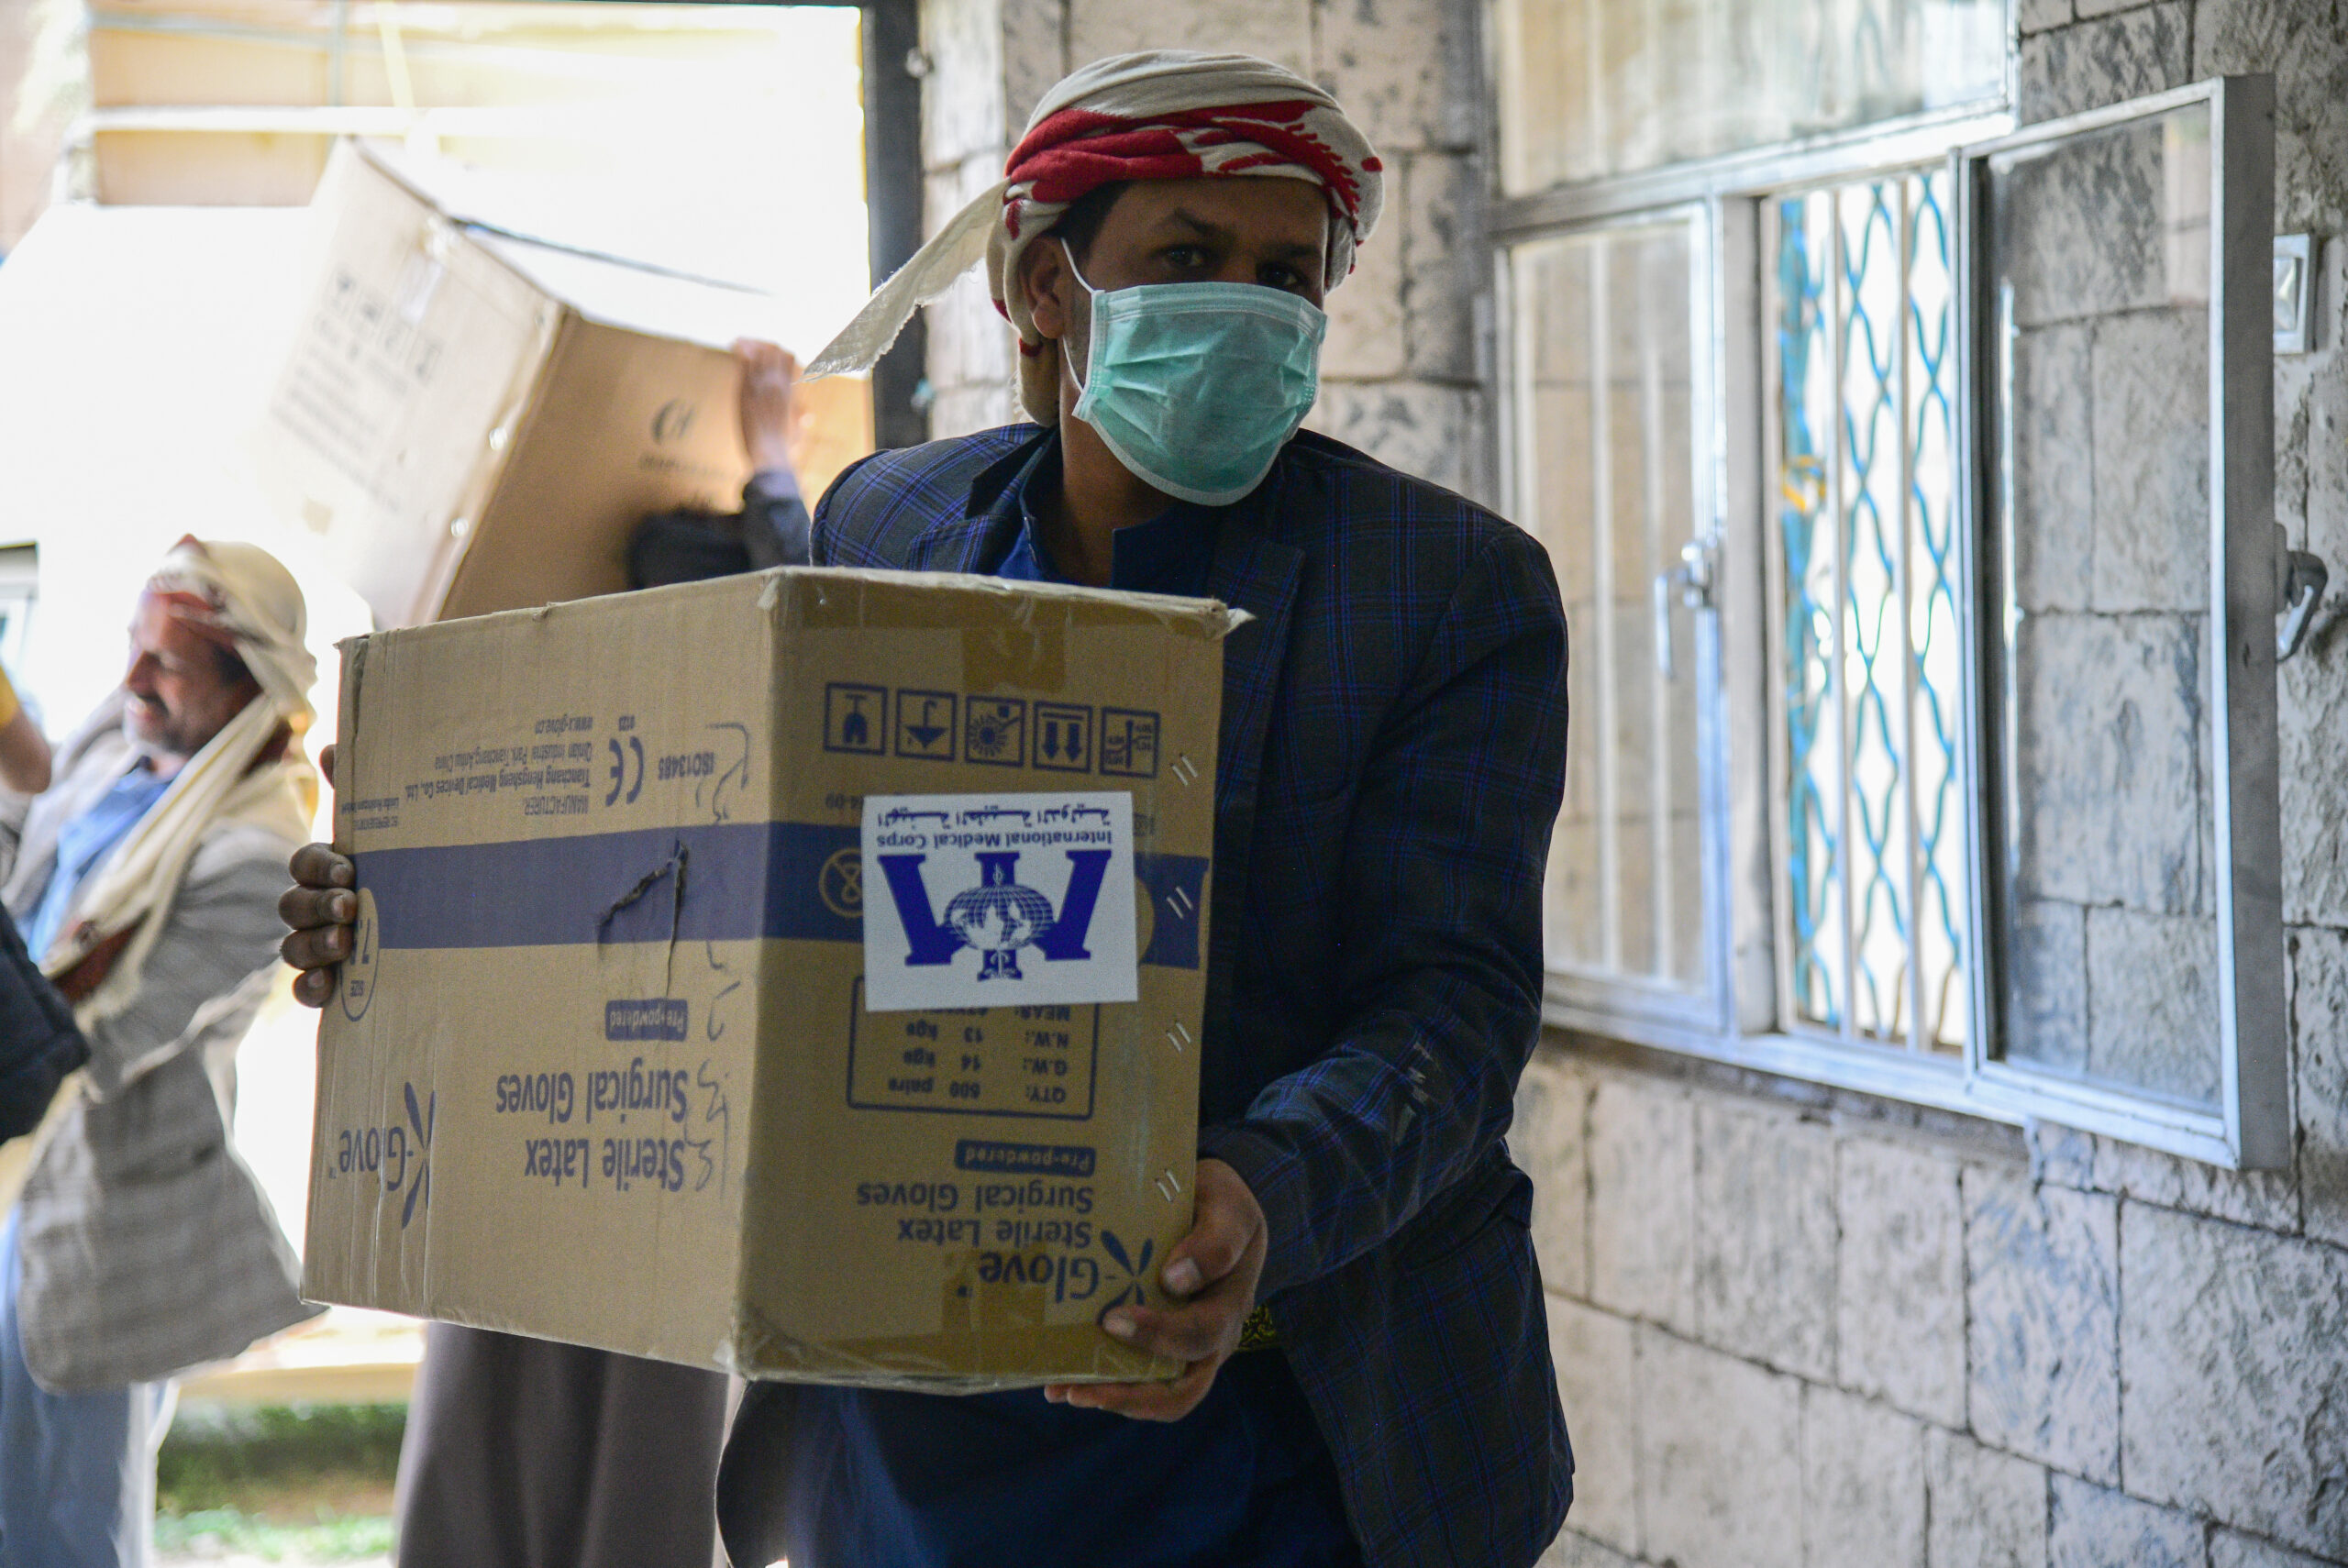 Our team recently delivered medical equipment and furniture to an orphanage in Sana'a city.